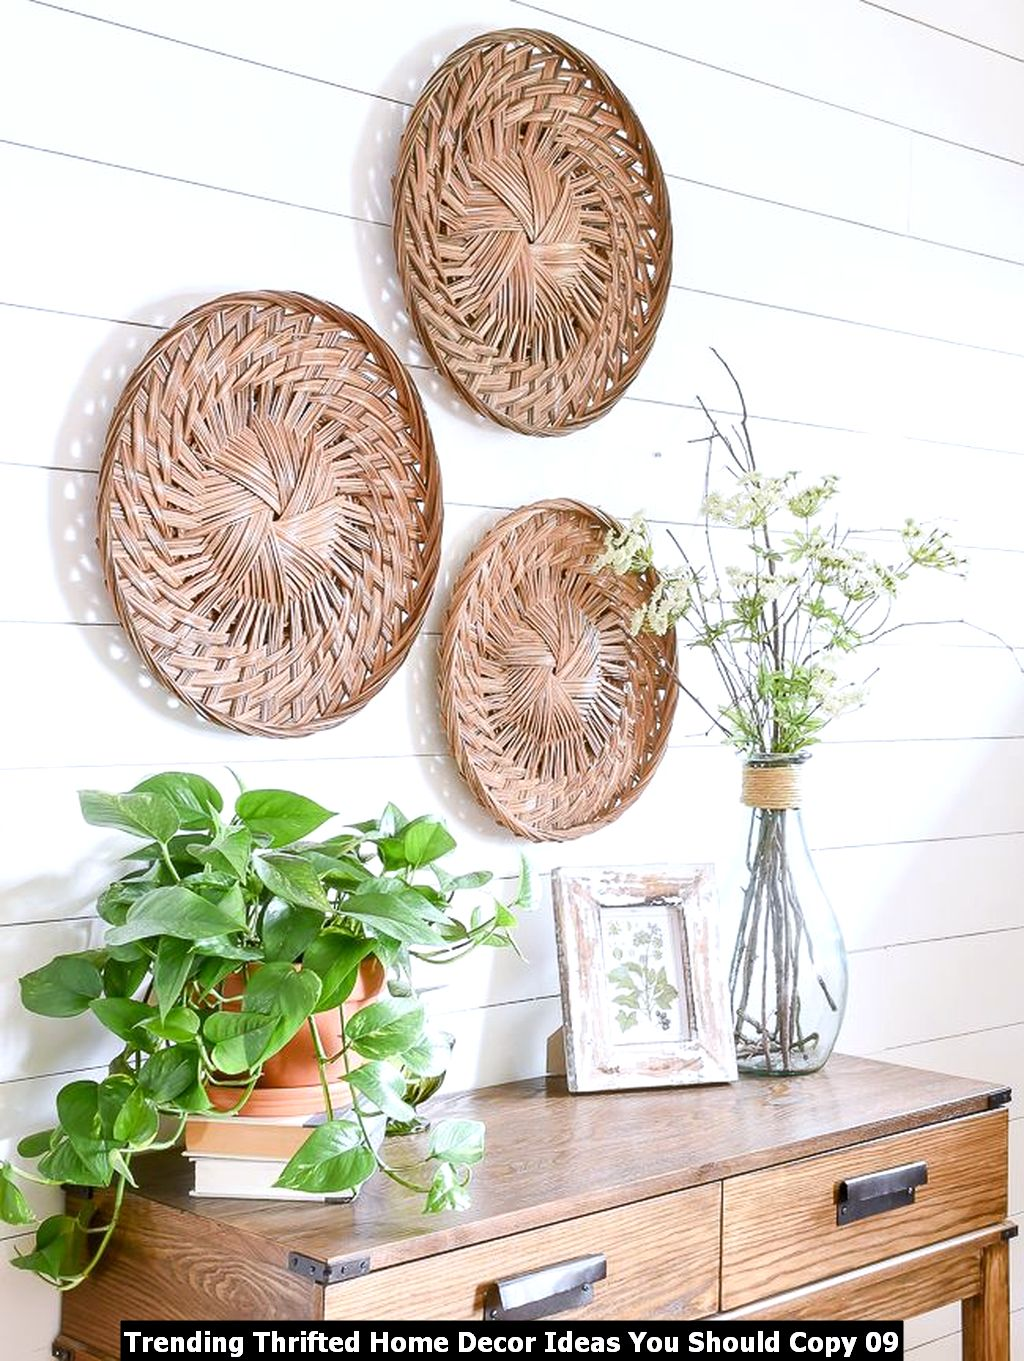 Trending Thrifted Home Decor Ideas You Should Copy 09